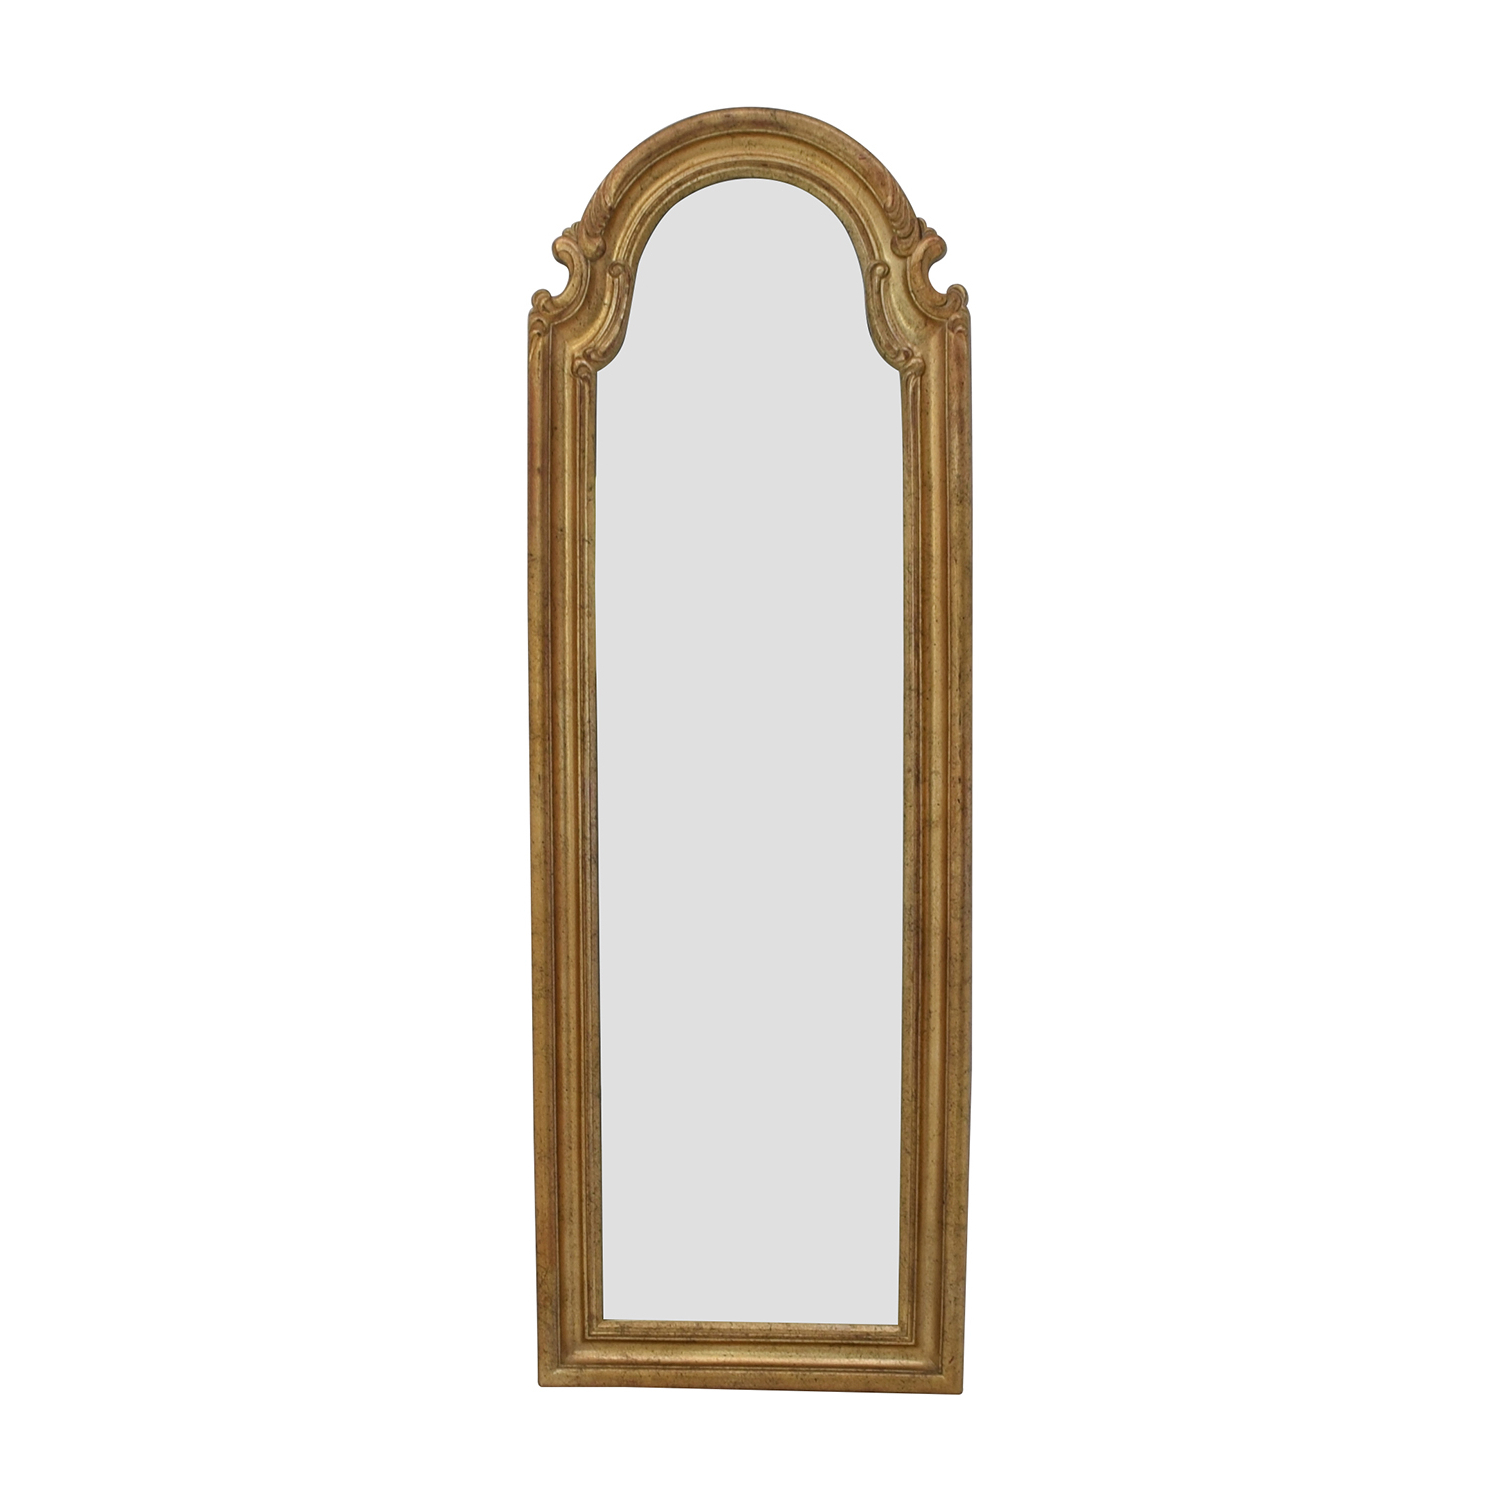 [%59% Off – Bombay Company Bombay Co Antique Gold Wall Mirror / Decor For Most Recent Gold Arch Wall Mirrors|gold Arch Wall Mirrors With Regard To Well Liked 59% Off – Bombay Company Bombay Co Antique Gold Wall Mirror / Decor|recent Gold Arch Wall Mirrors Pertaining To 59% Off – Bombay Company Bombay Co Antique Gold Wall Mirror / Decor|well Known 59% Off – Bombay Company Bombay Co Antique Gold Wall Mirror / Decor Regarding Gold Arch Wall Mirrors%] (View 10 of 20)